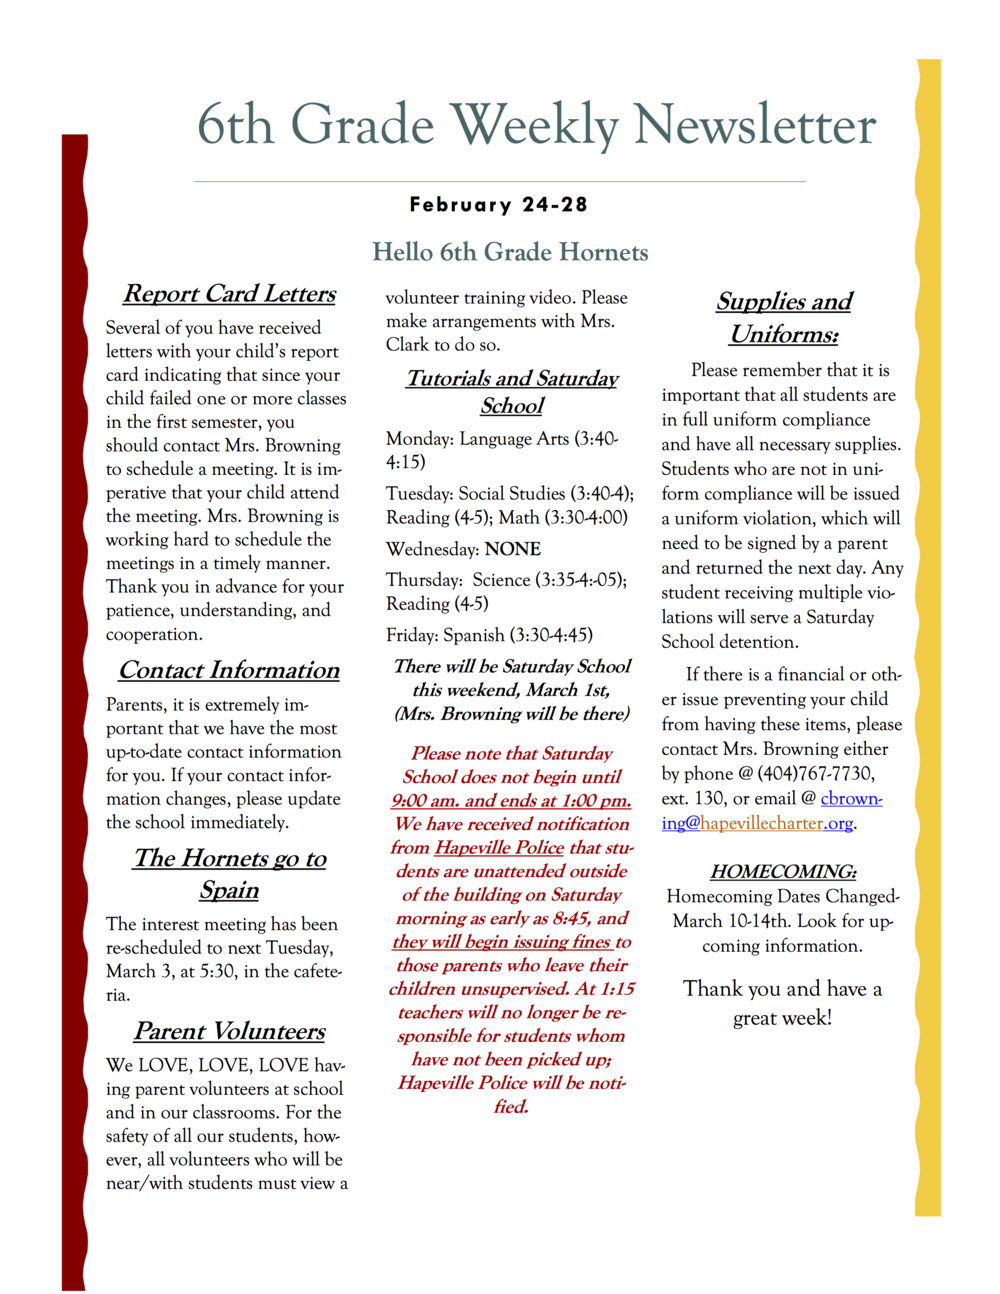 6th grade February 24-28A.png